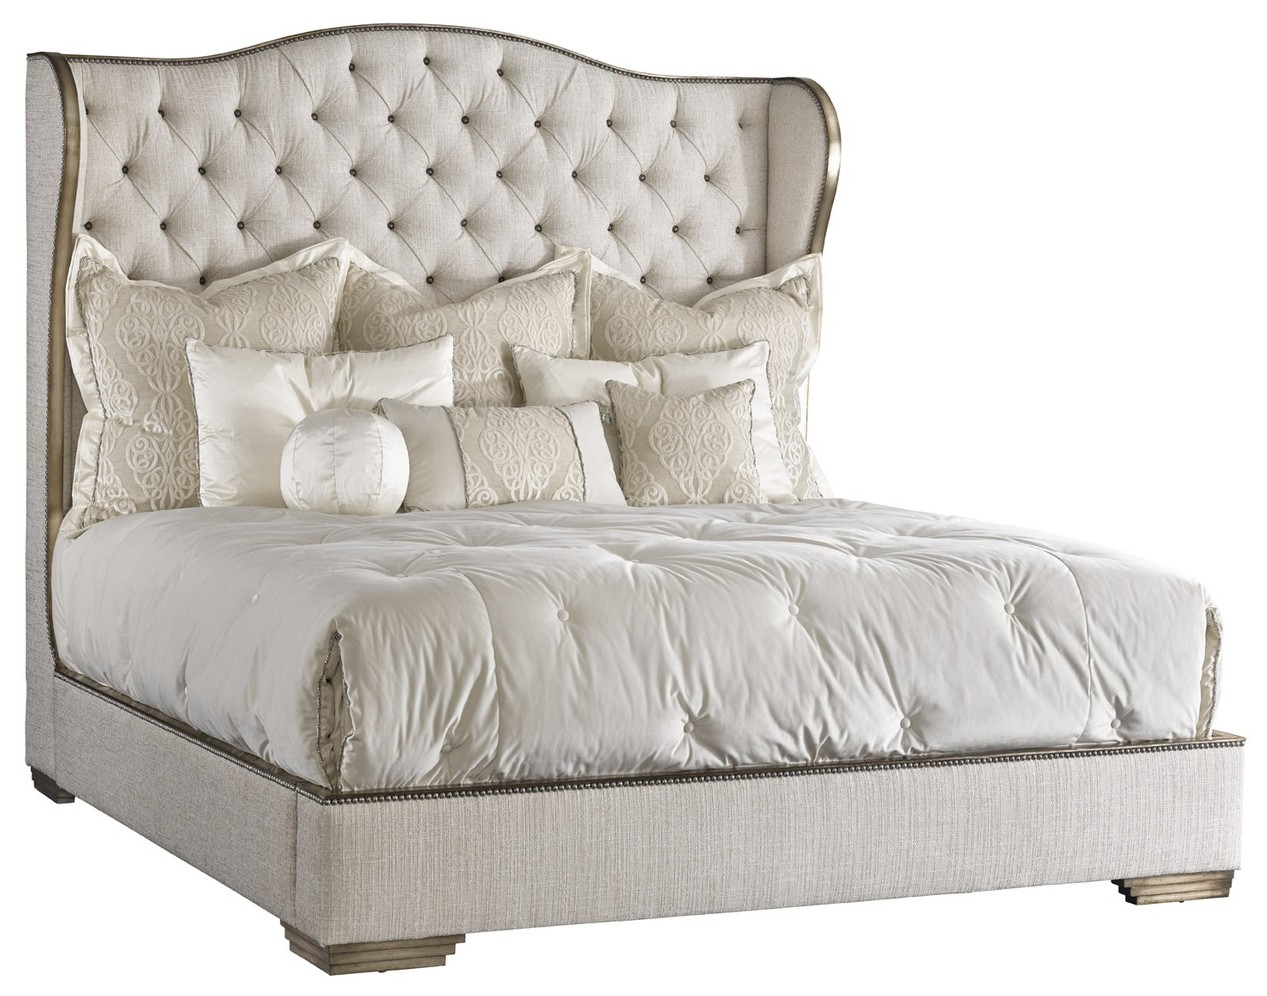 Design Tufted Bed bed with tufted headboard in a elegant platinum linen beds queen king california sizes elegant